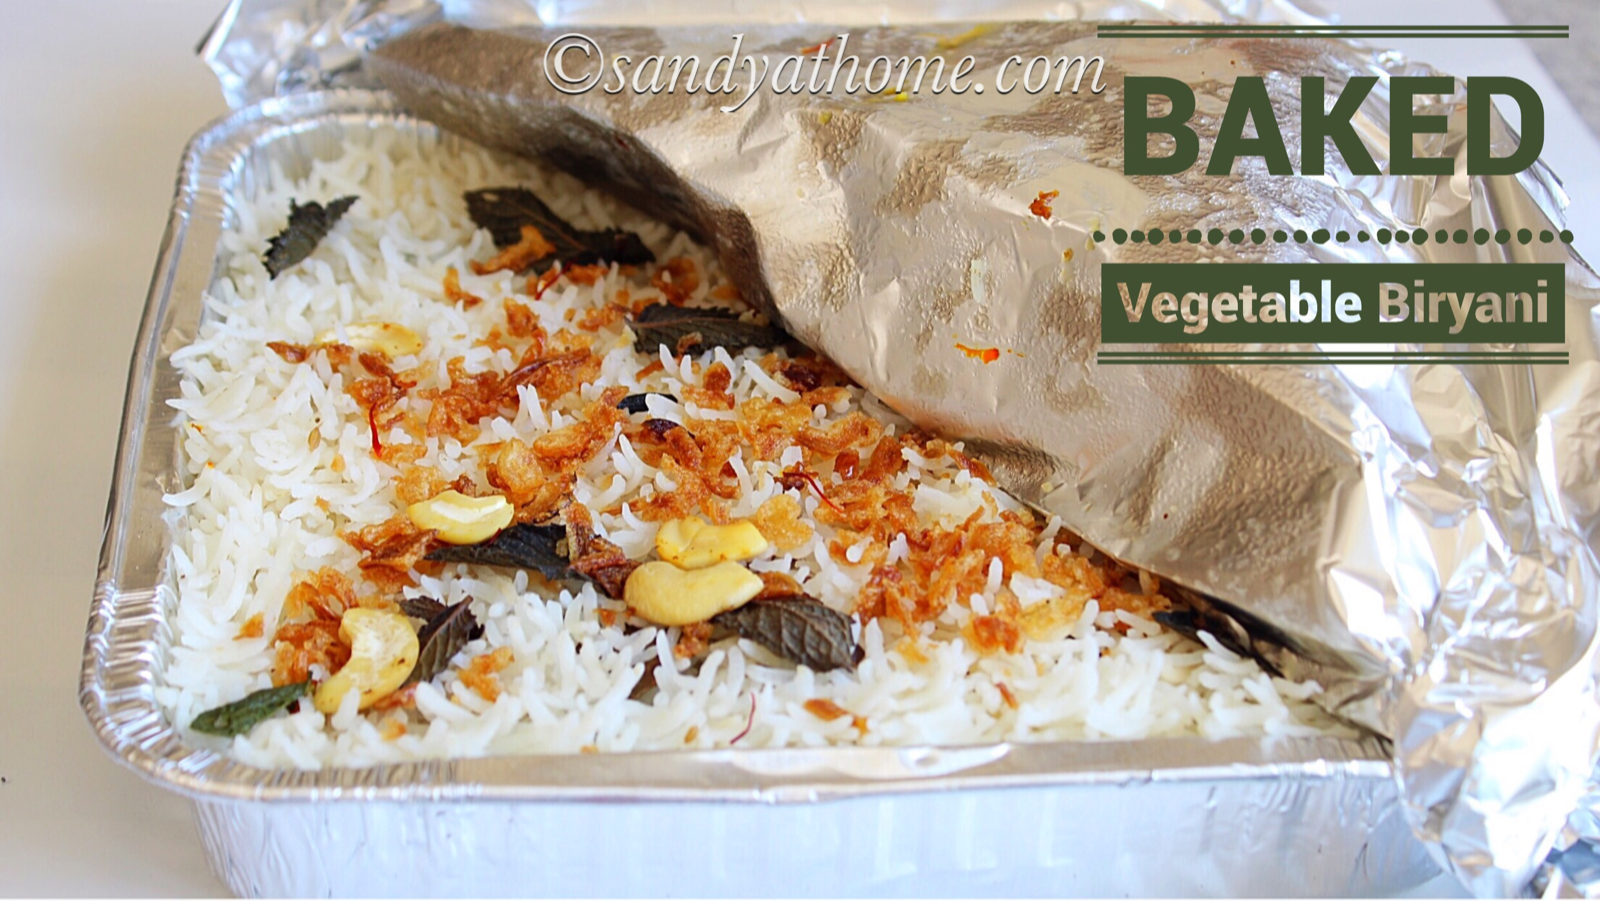 baked vegetable biryani recipe, vegetable biryani, biryani